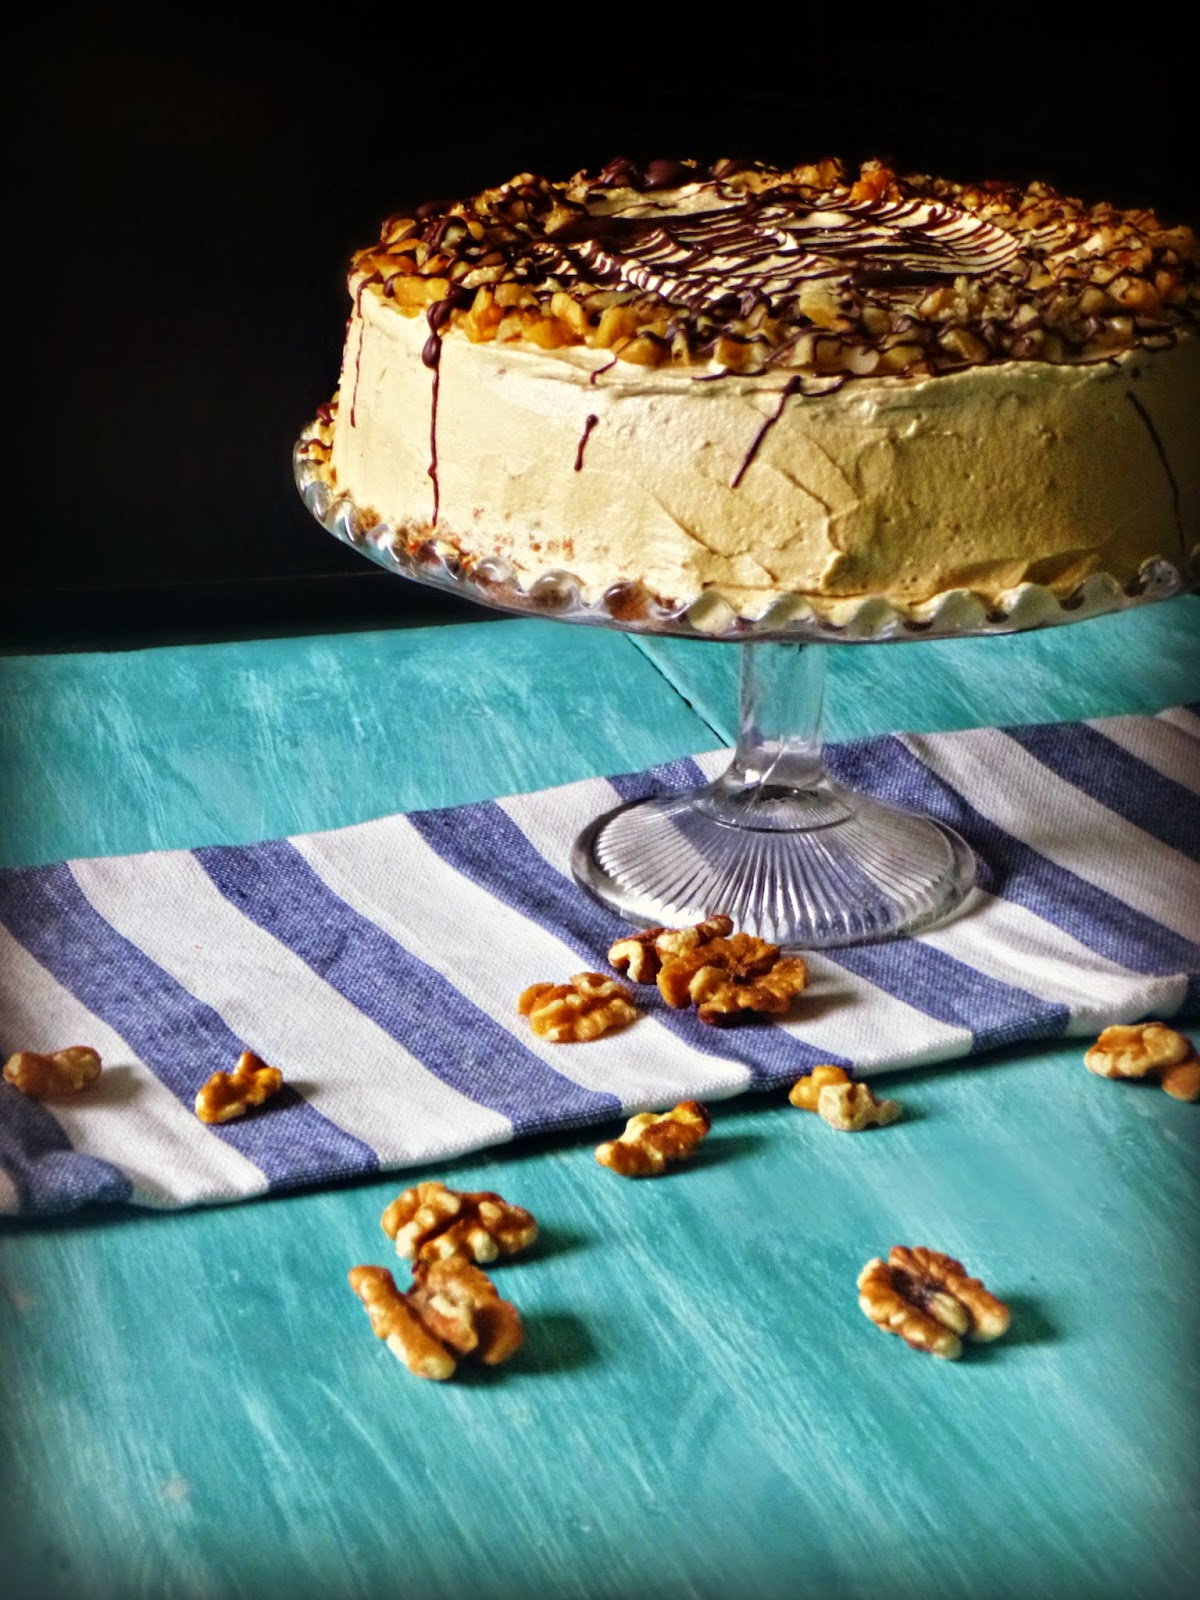 The Spoon And Whisk Coffee Cinnamon And Walnut Cake